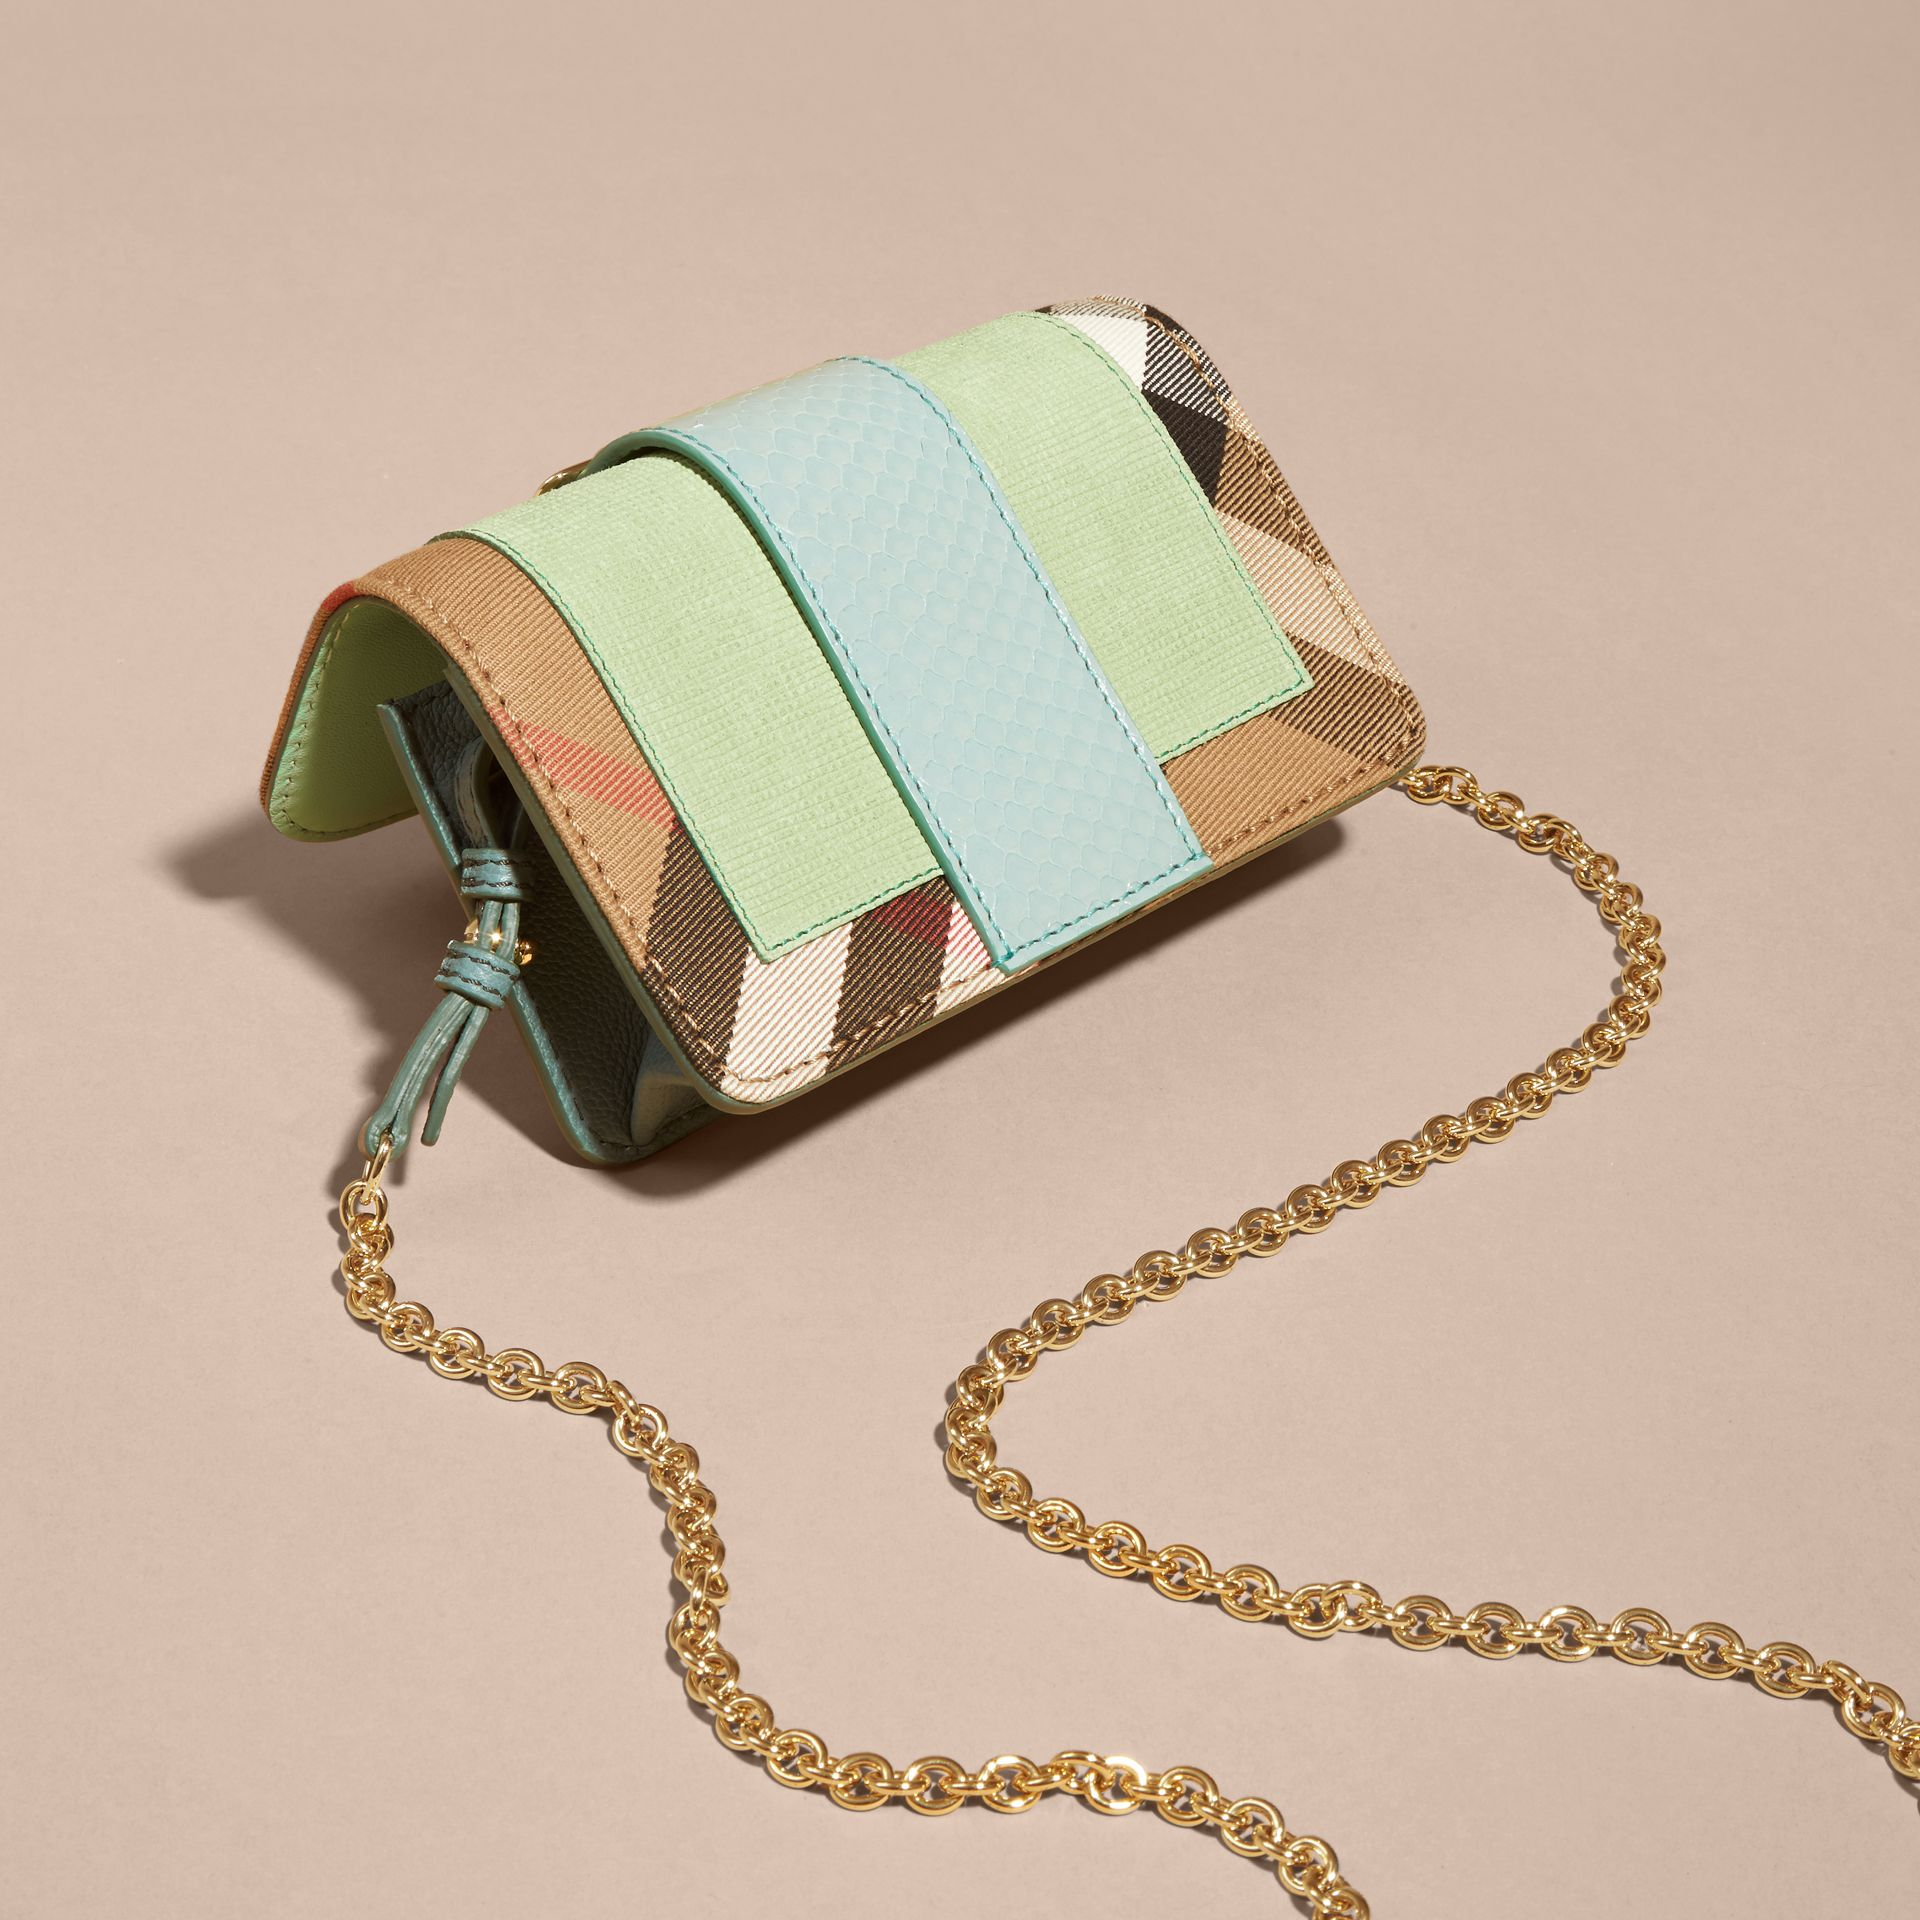 Menta chiaro Borsa The Buckle mini con pelle di serpente e motivo House check - immagine della galleria 9